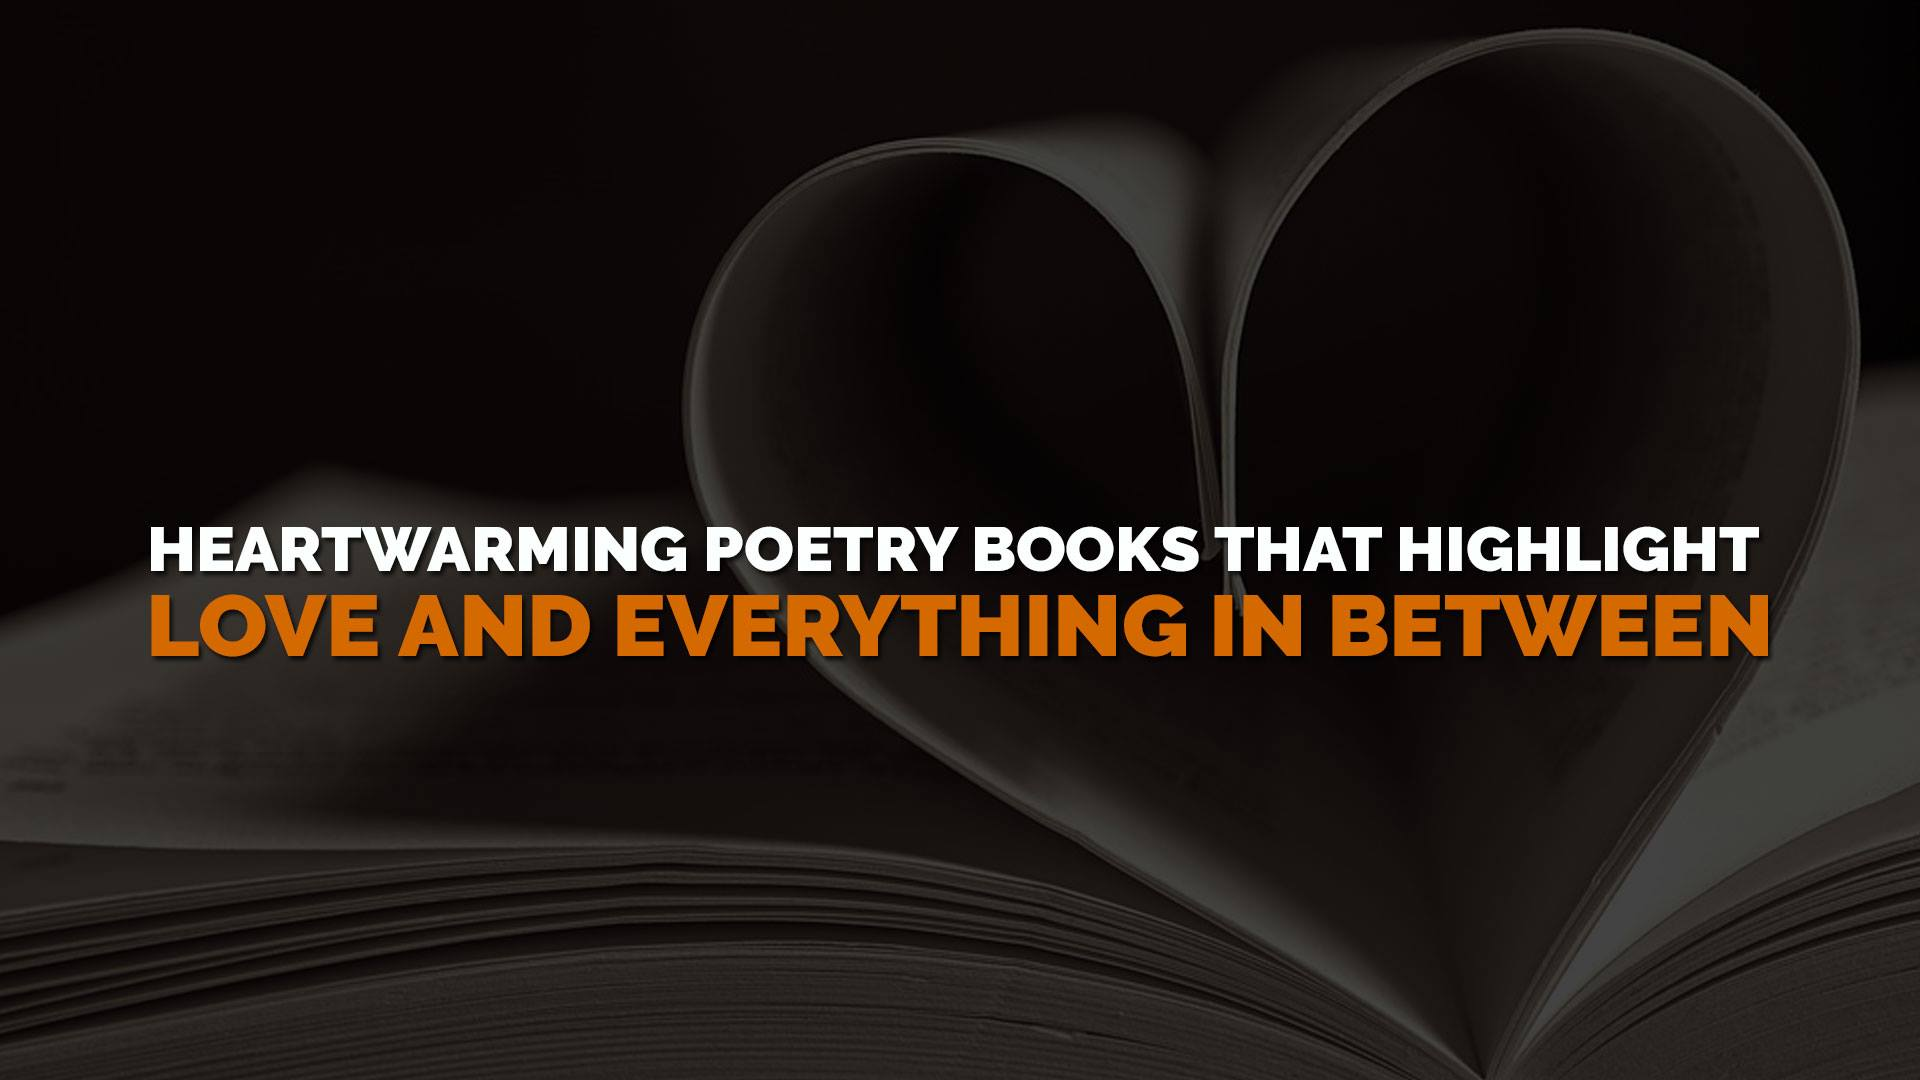 Heartwarming Poetry Books that Highlight Love and Everything in Between